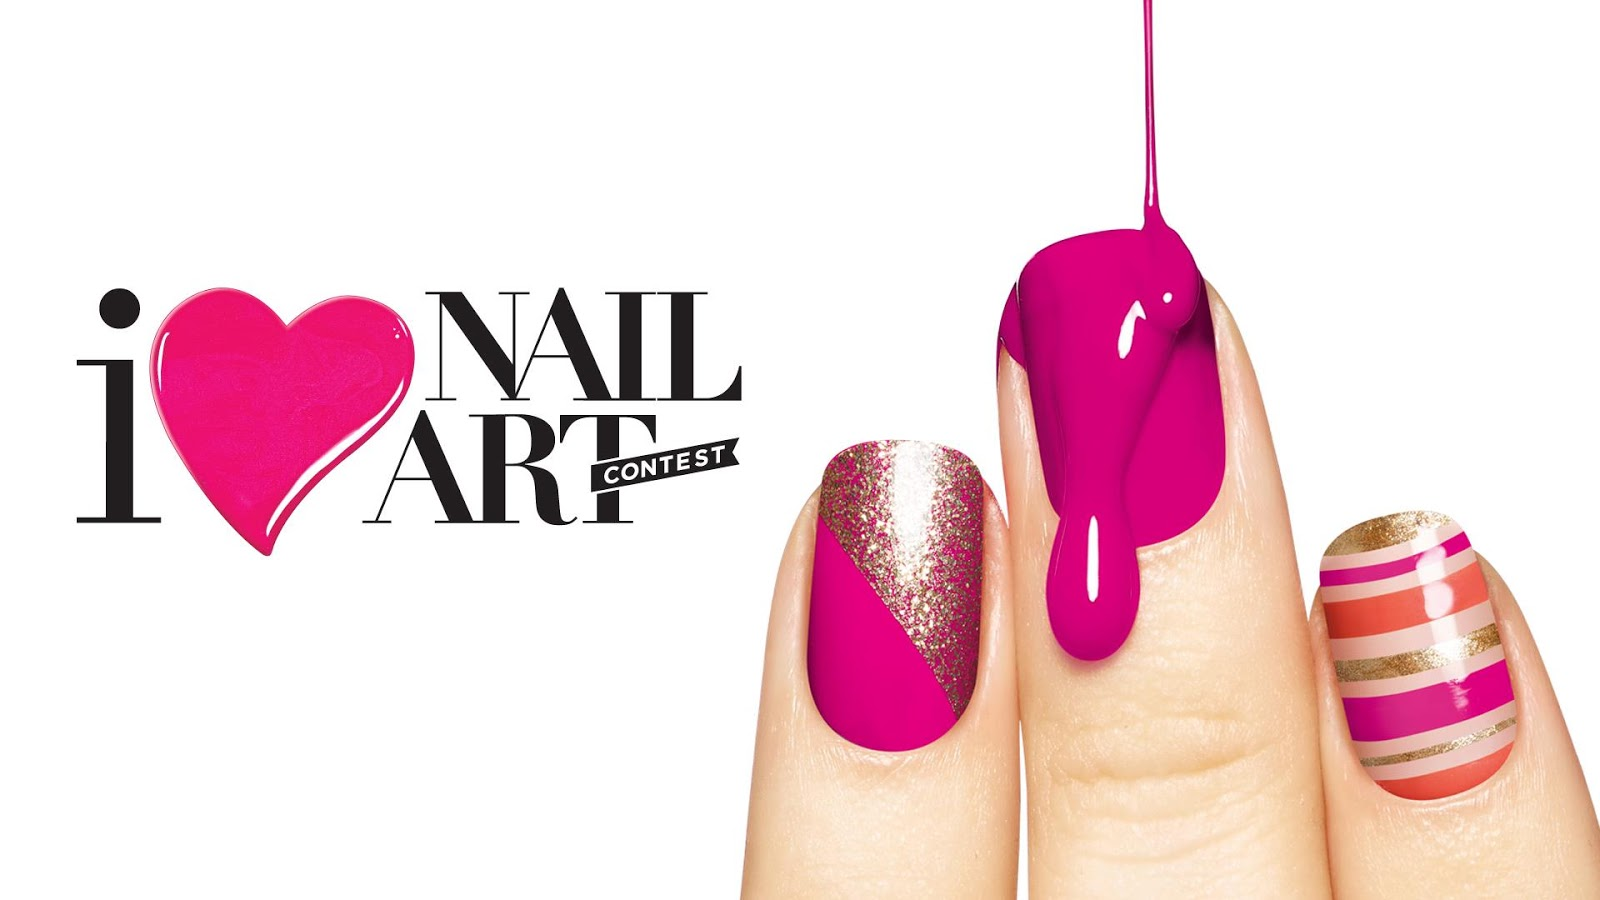 Nail Art Logo Images Easy Nail Designs For Beginners Step By Step